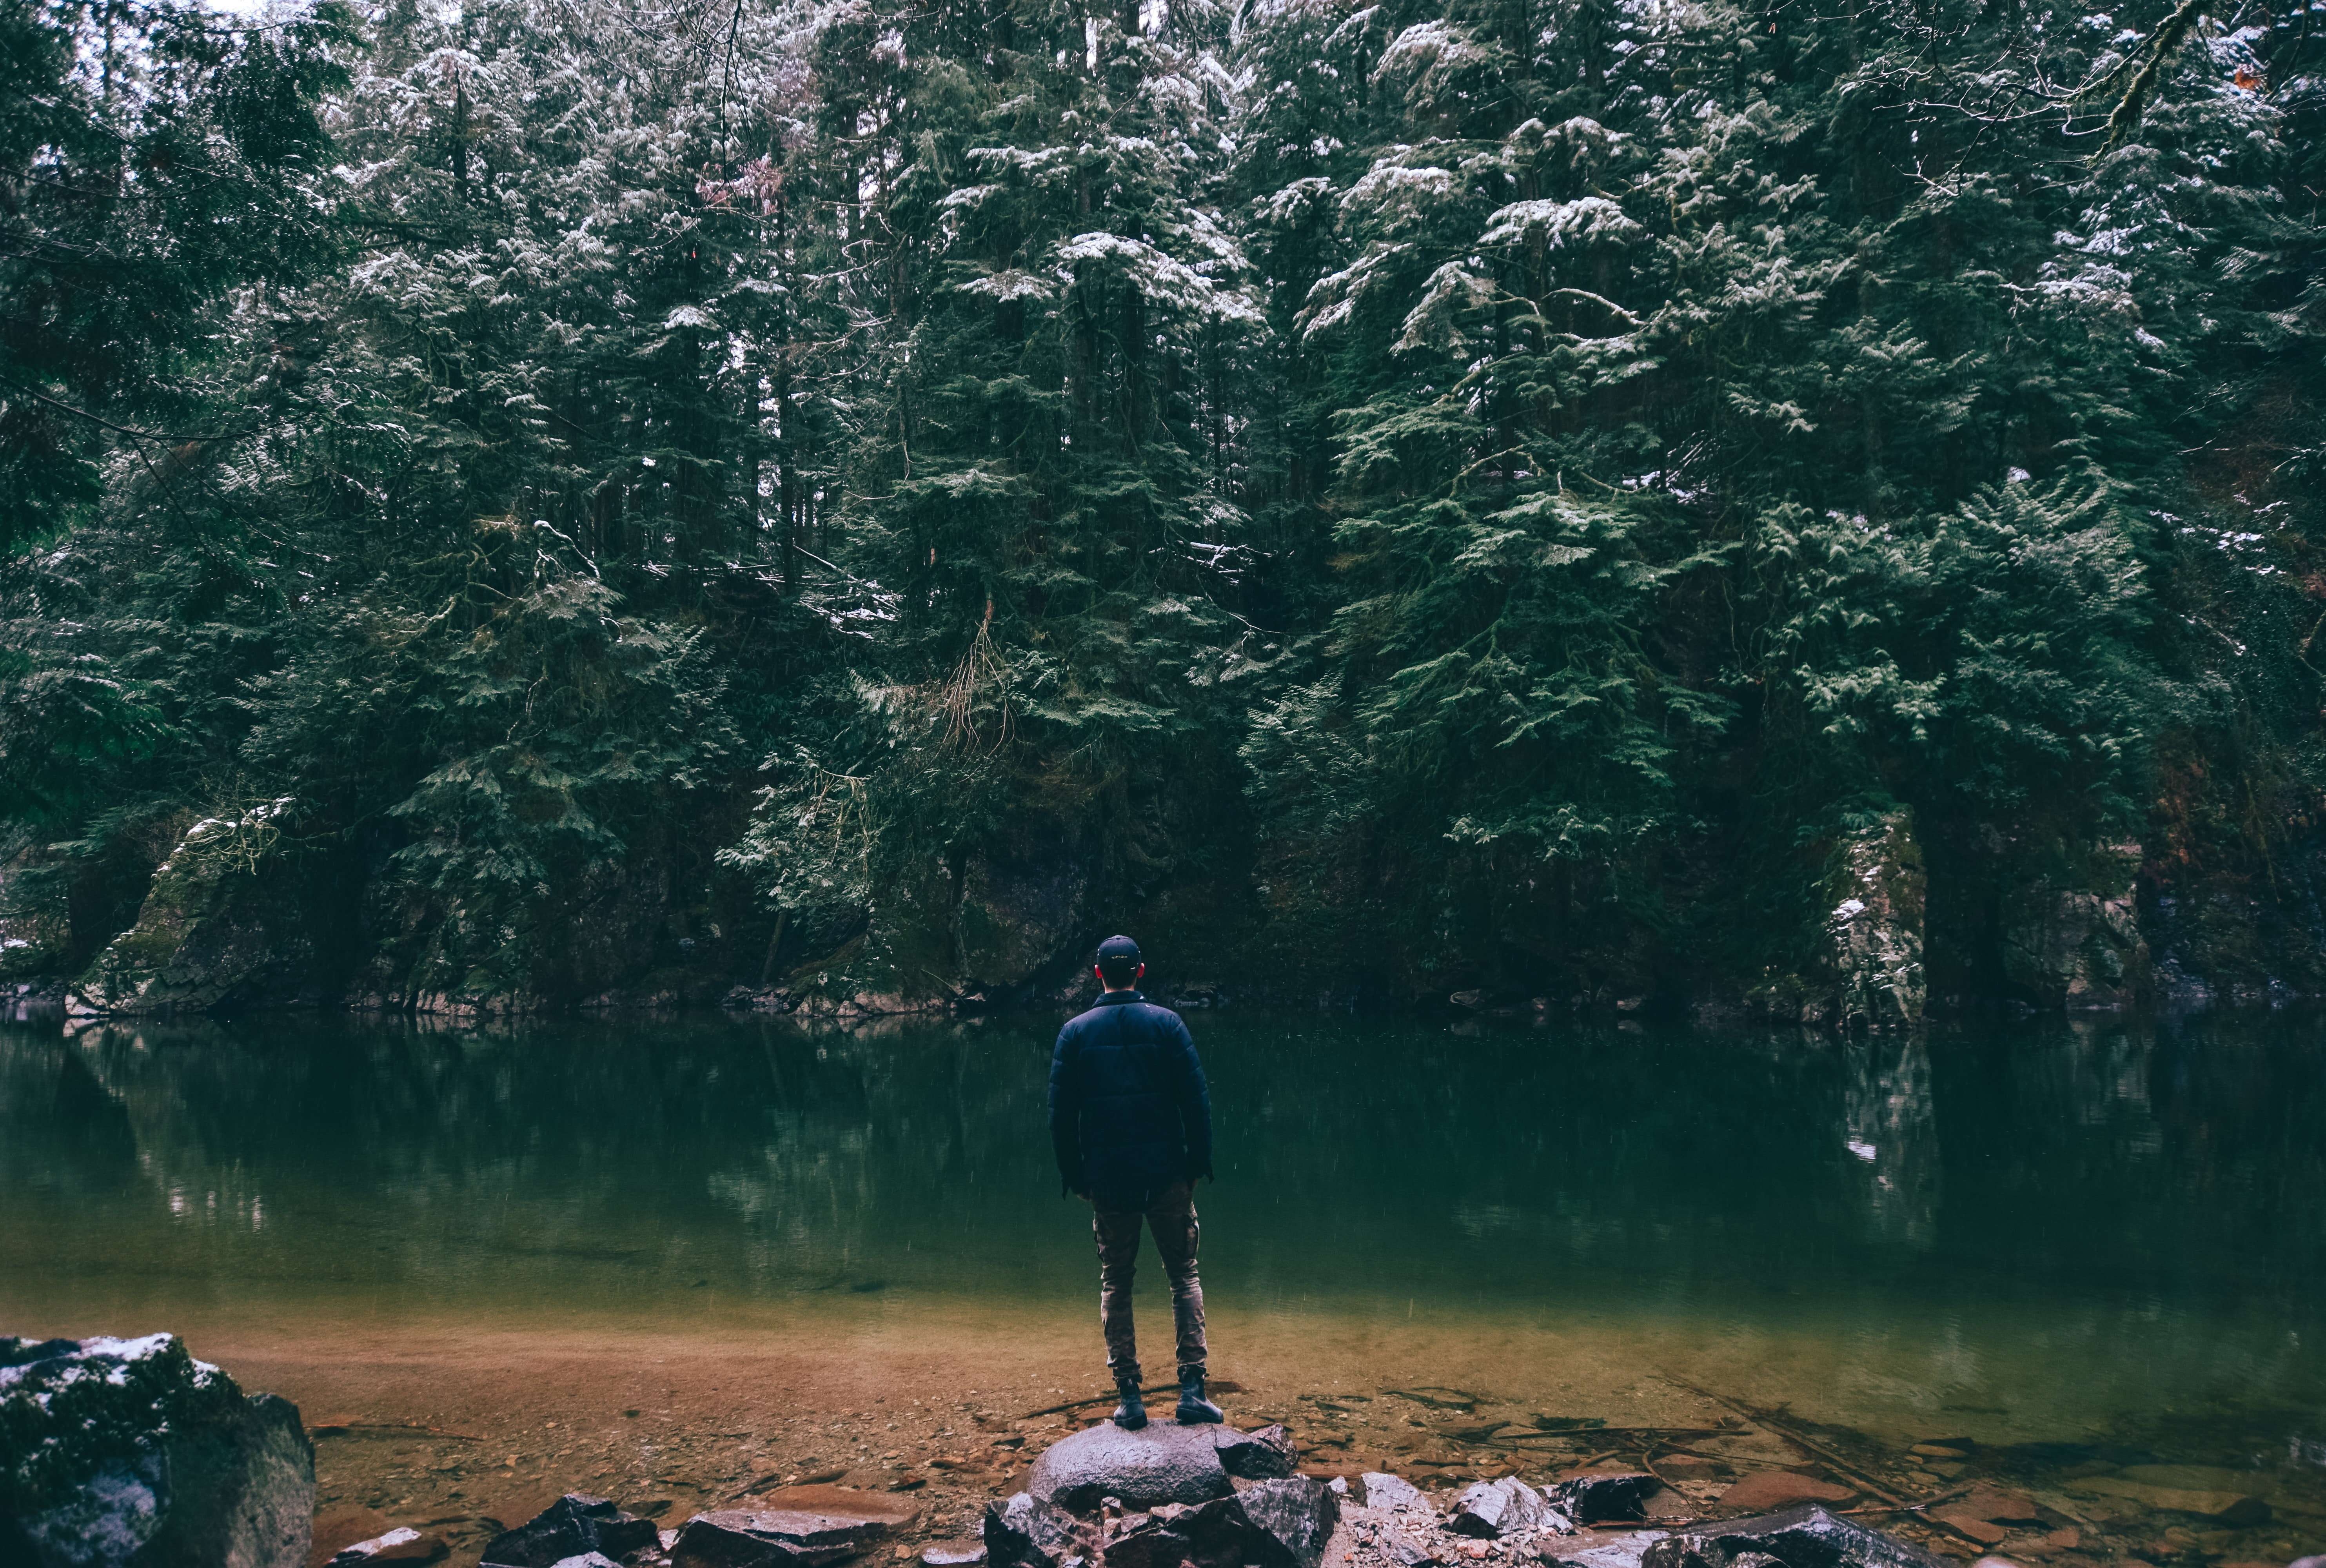 man standing on rock facing body of water surrounded with trees